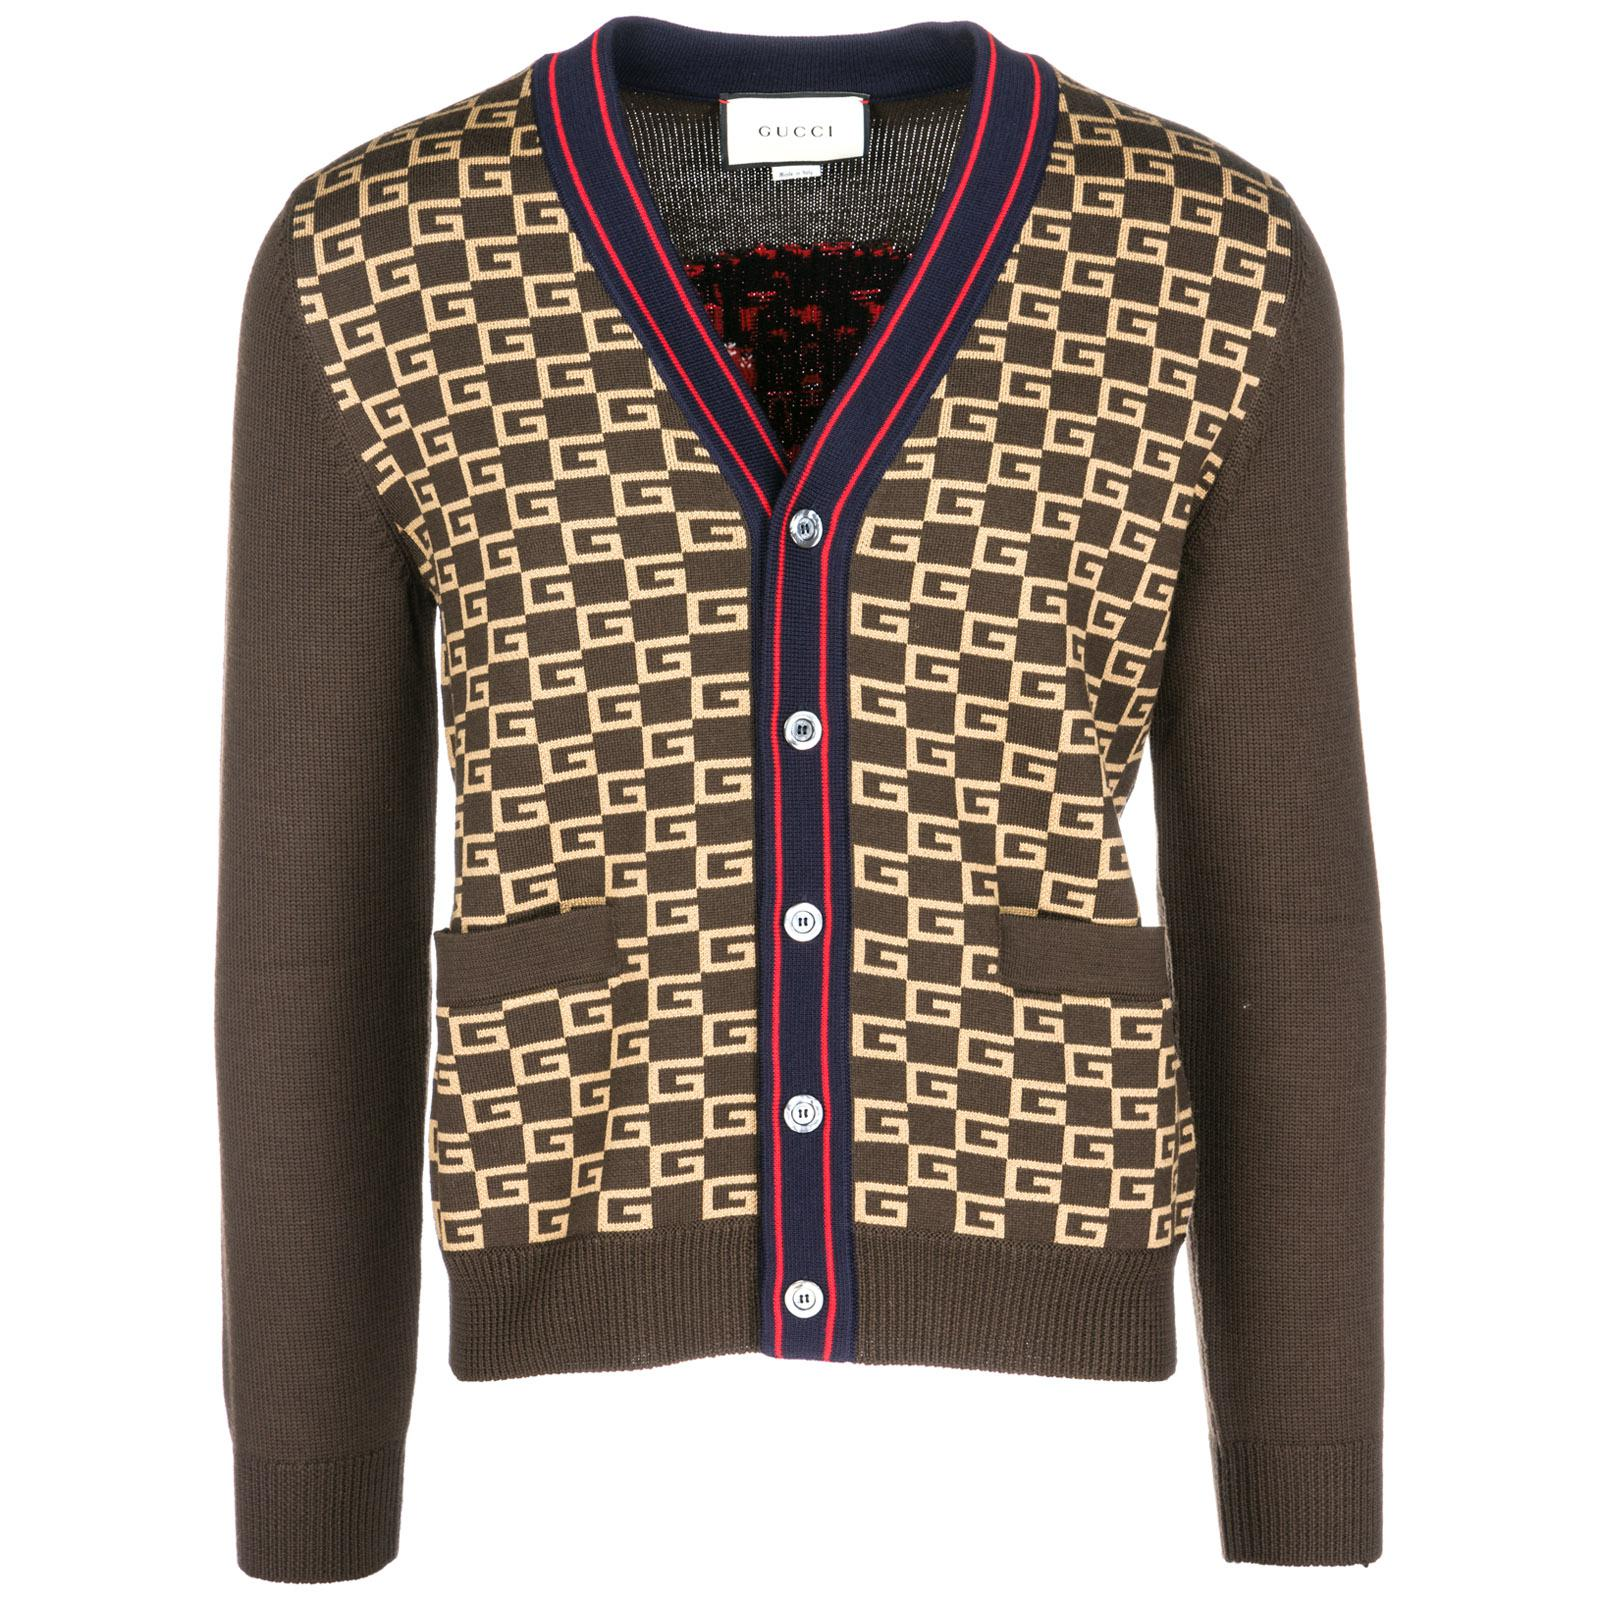 f130a78a9fa50a Gucci Cardigan Jumper Sweater Pullover for Men - Lyst